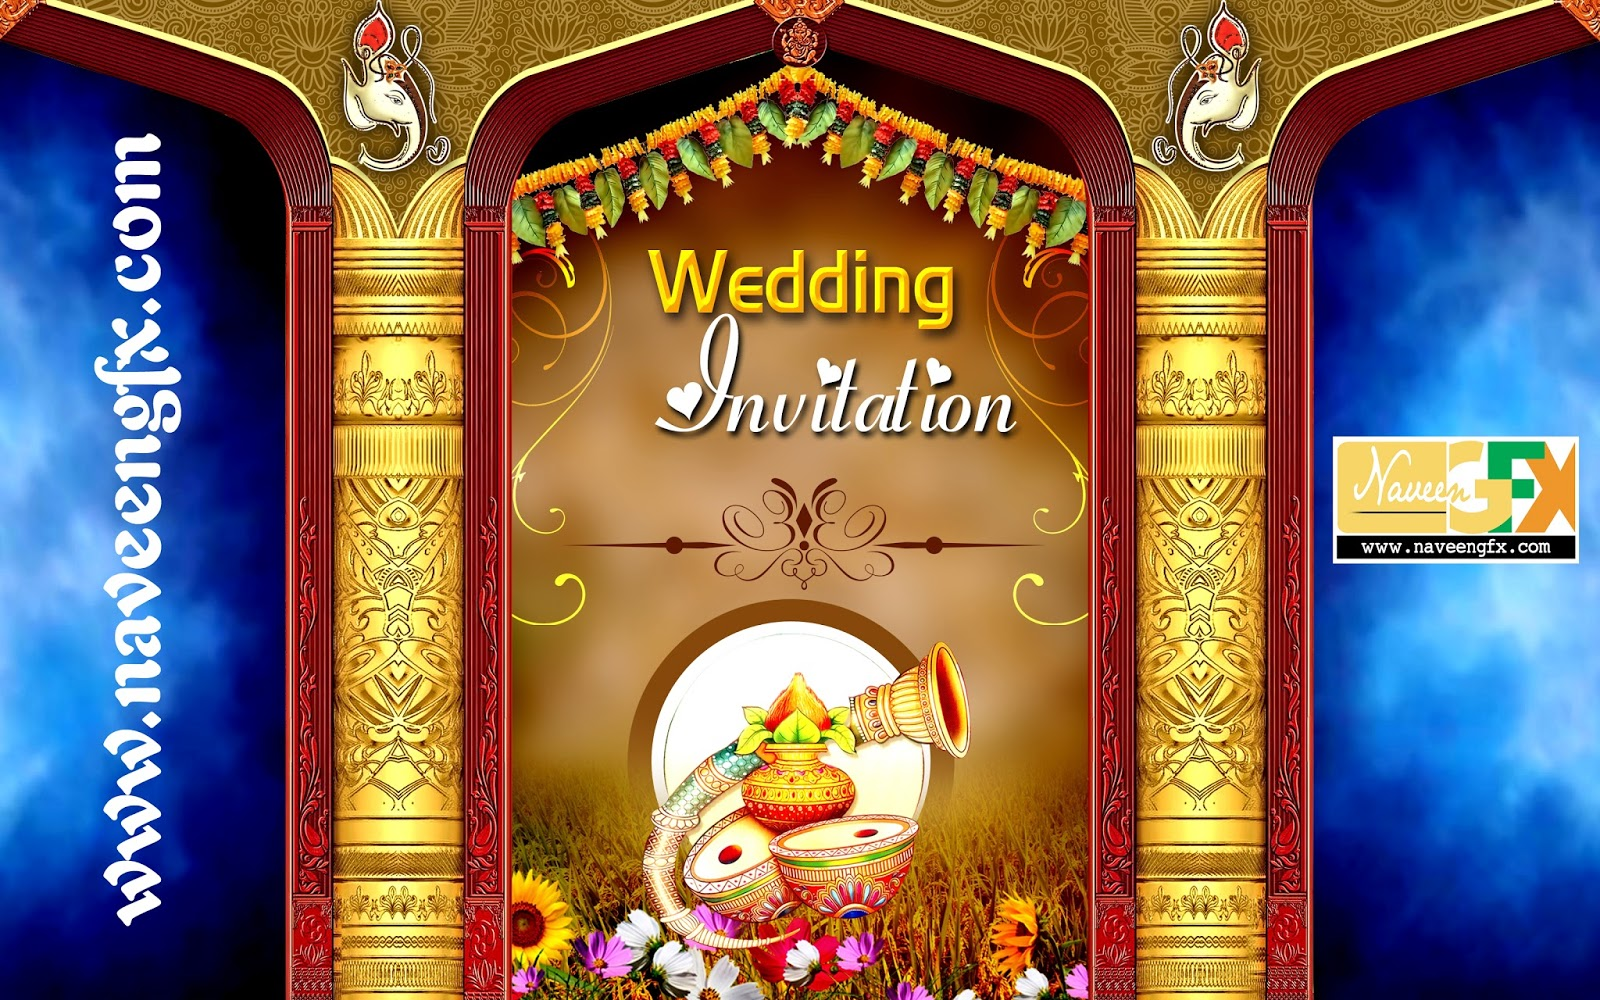 wedding banners design template free download for photoshop users